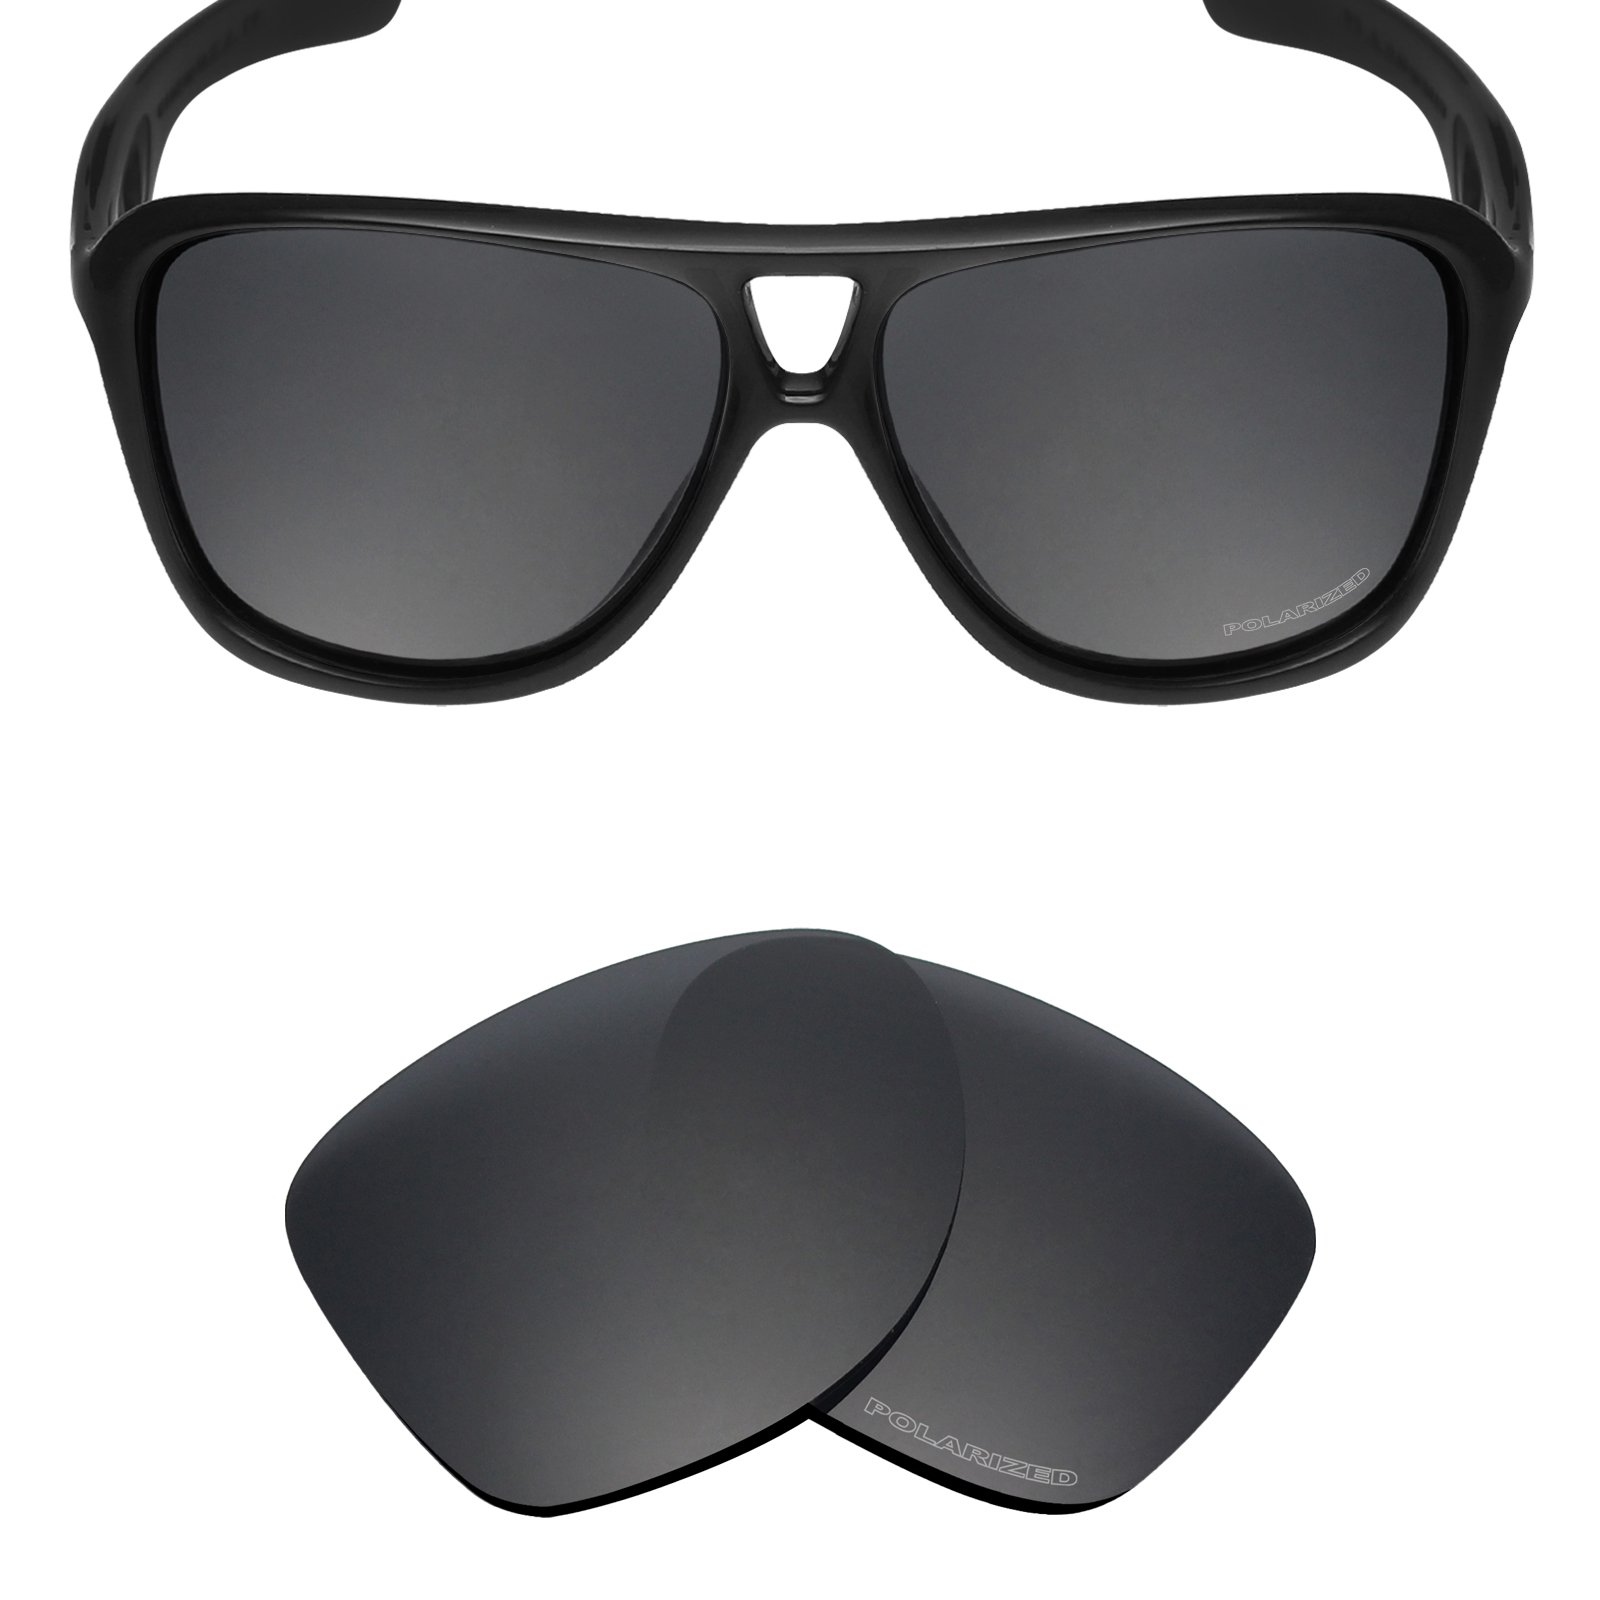 Mryok+ Polarized Replacement Lenses for Oakley Dispatch 2 - Stealth Black by Mryok